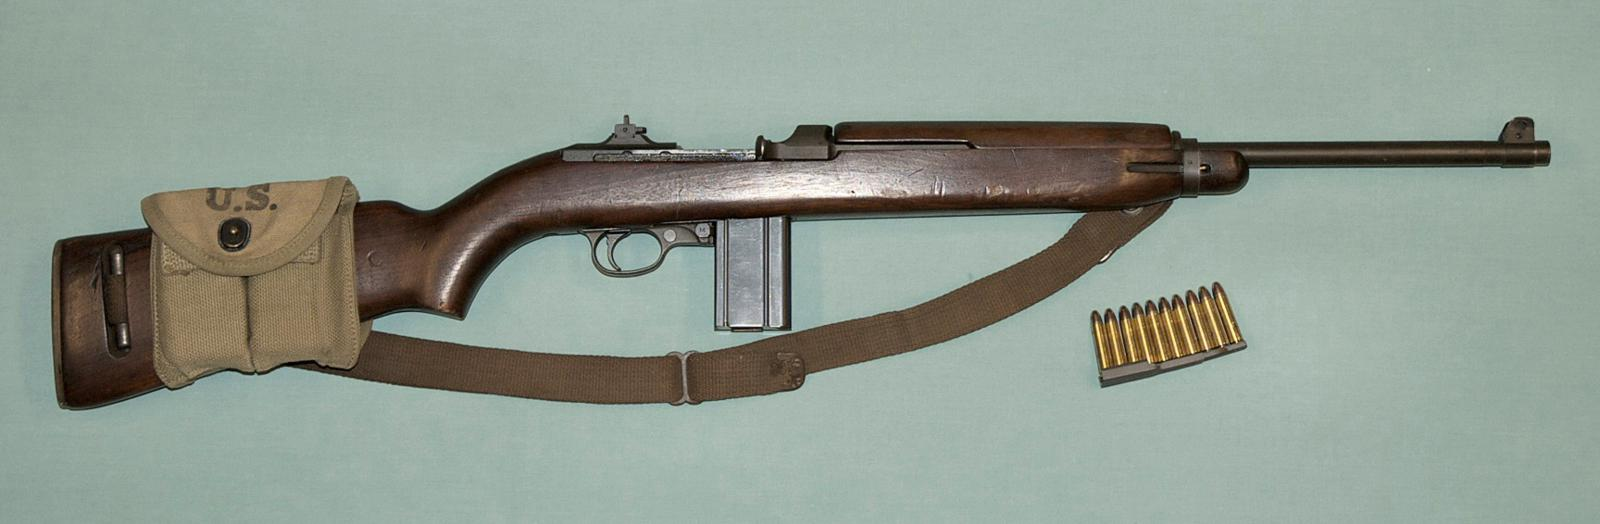 us jungle carbine